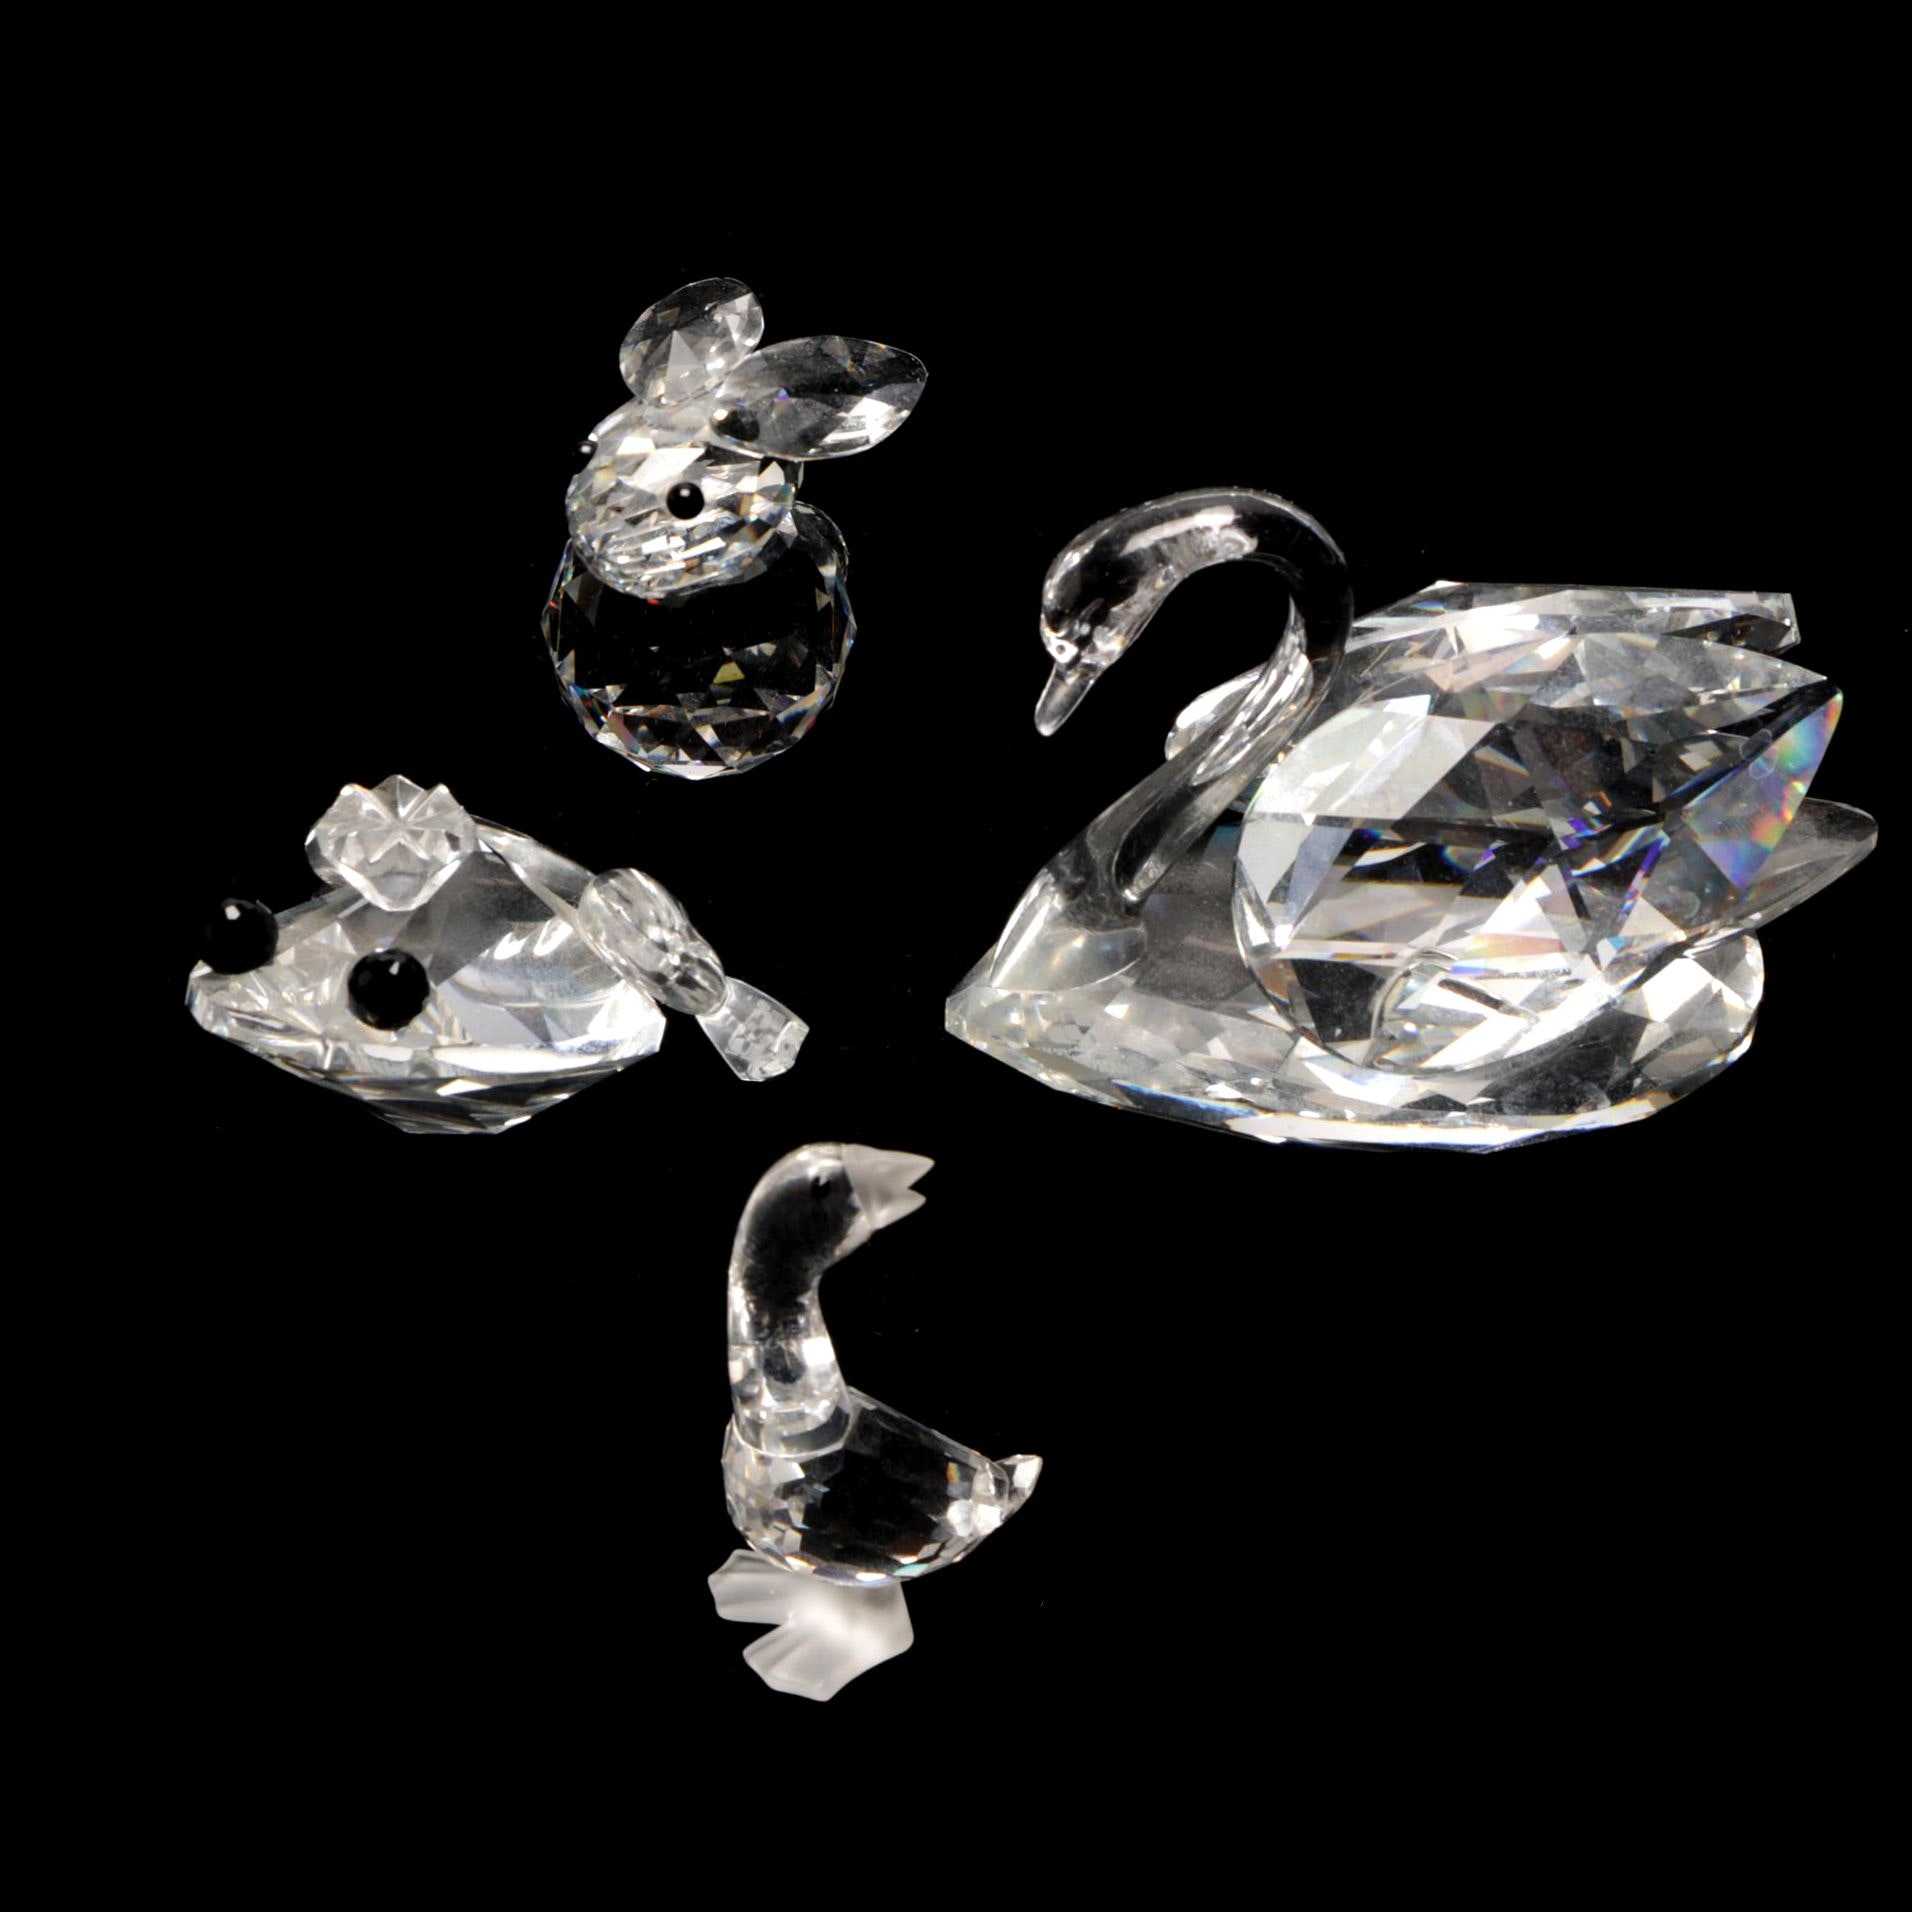 Swarovski Crystal Figurines